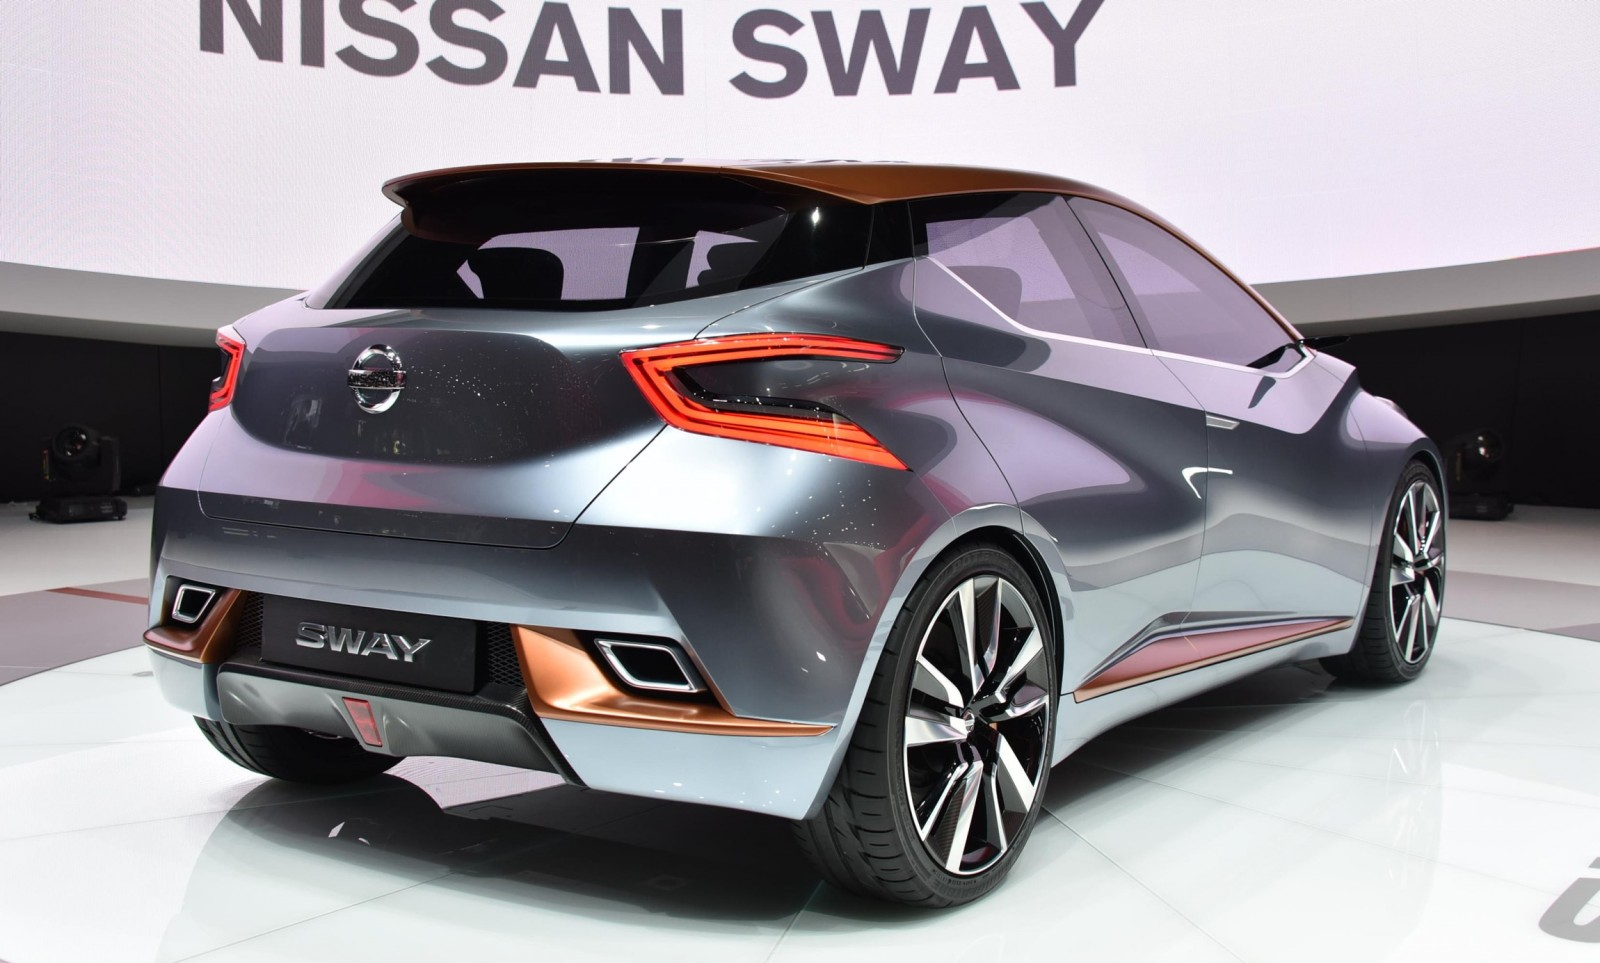 2015 Nissan SWAY Concept 35